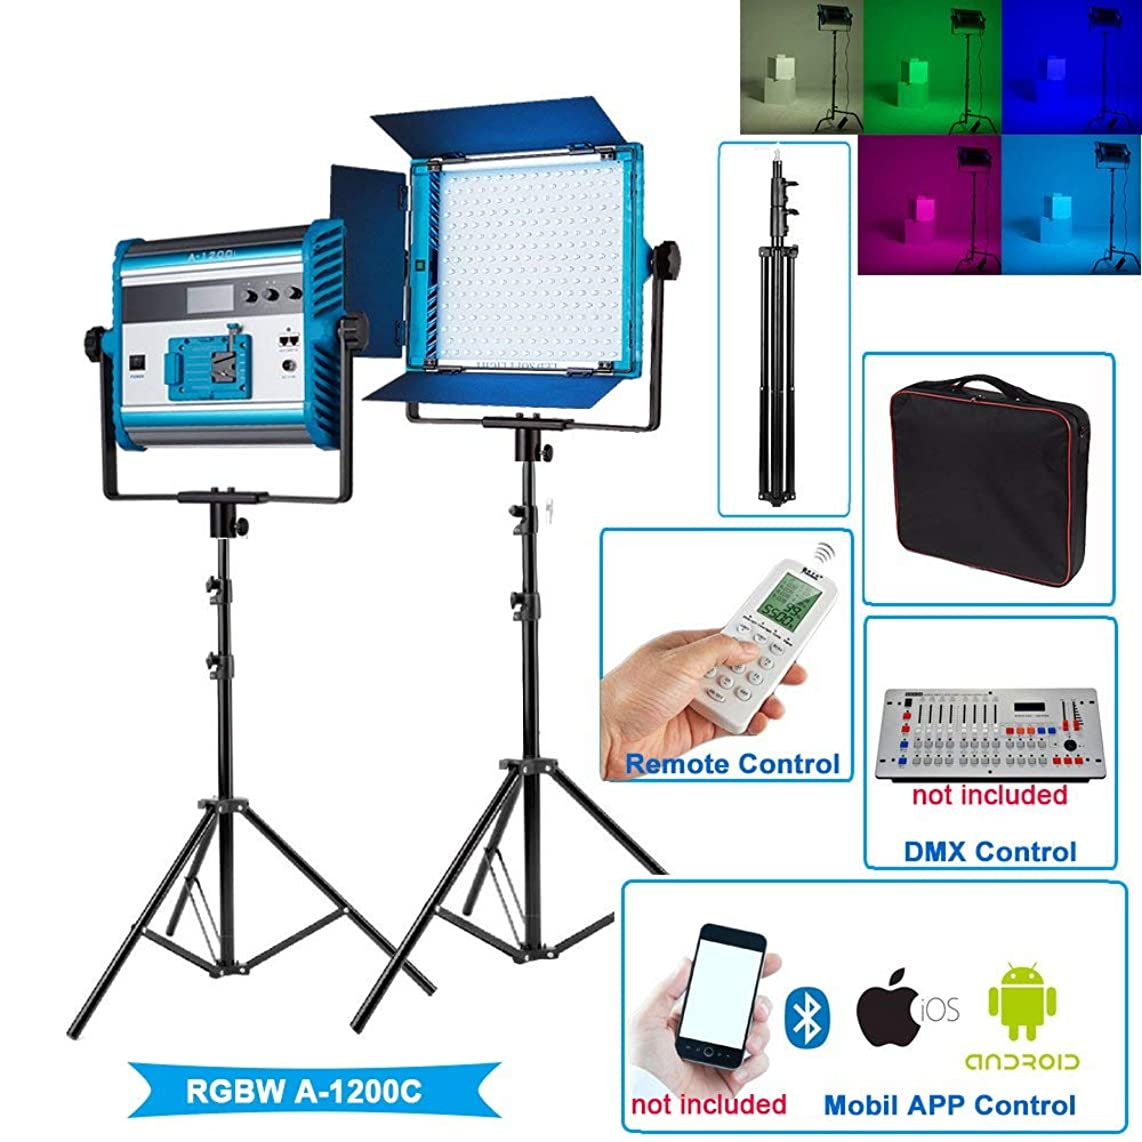 Yidoblo RGBW LED Soft Video Light Panel Kit 2800K-10000K Adjustable by DMX/Phone App/Remote Control with Stand/Barndoors/Travel Case,96W Continuous Photography Lighting for Photo Studio Video Film